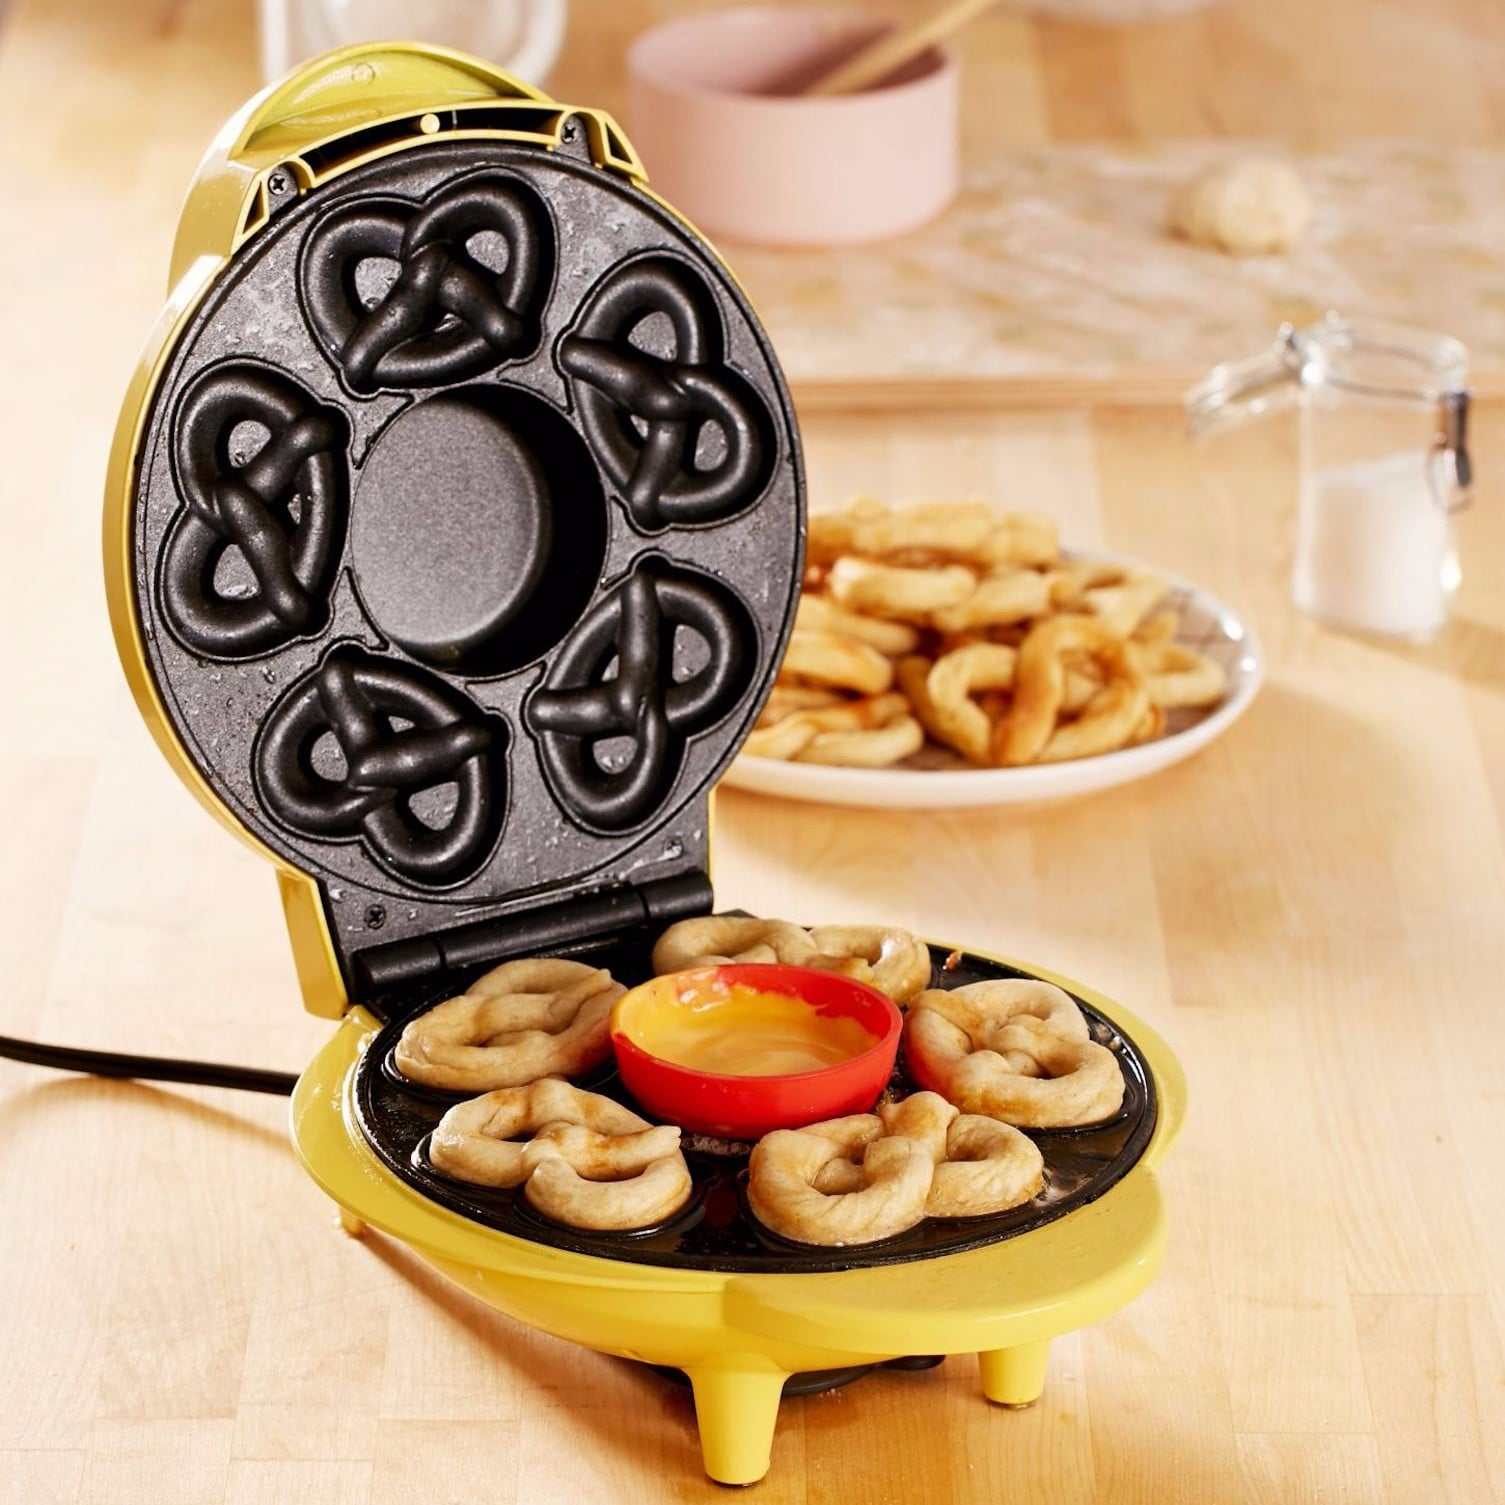 Cool Cooking Gadgets From Urban Outfitters POPSUGAR Food